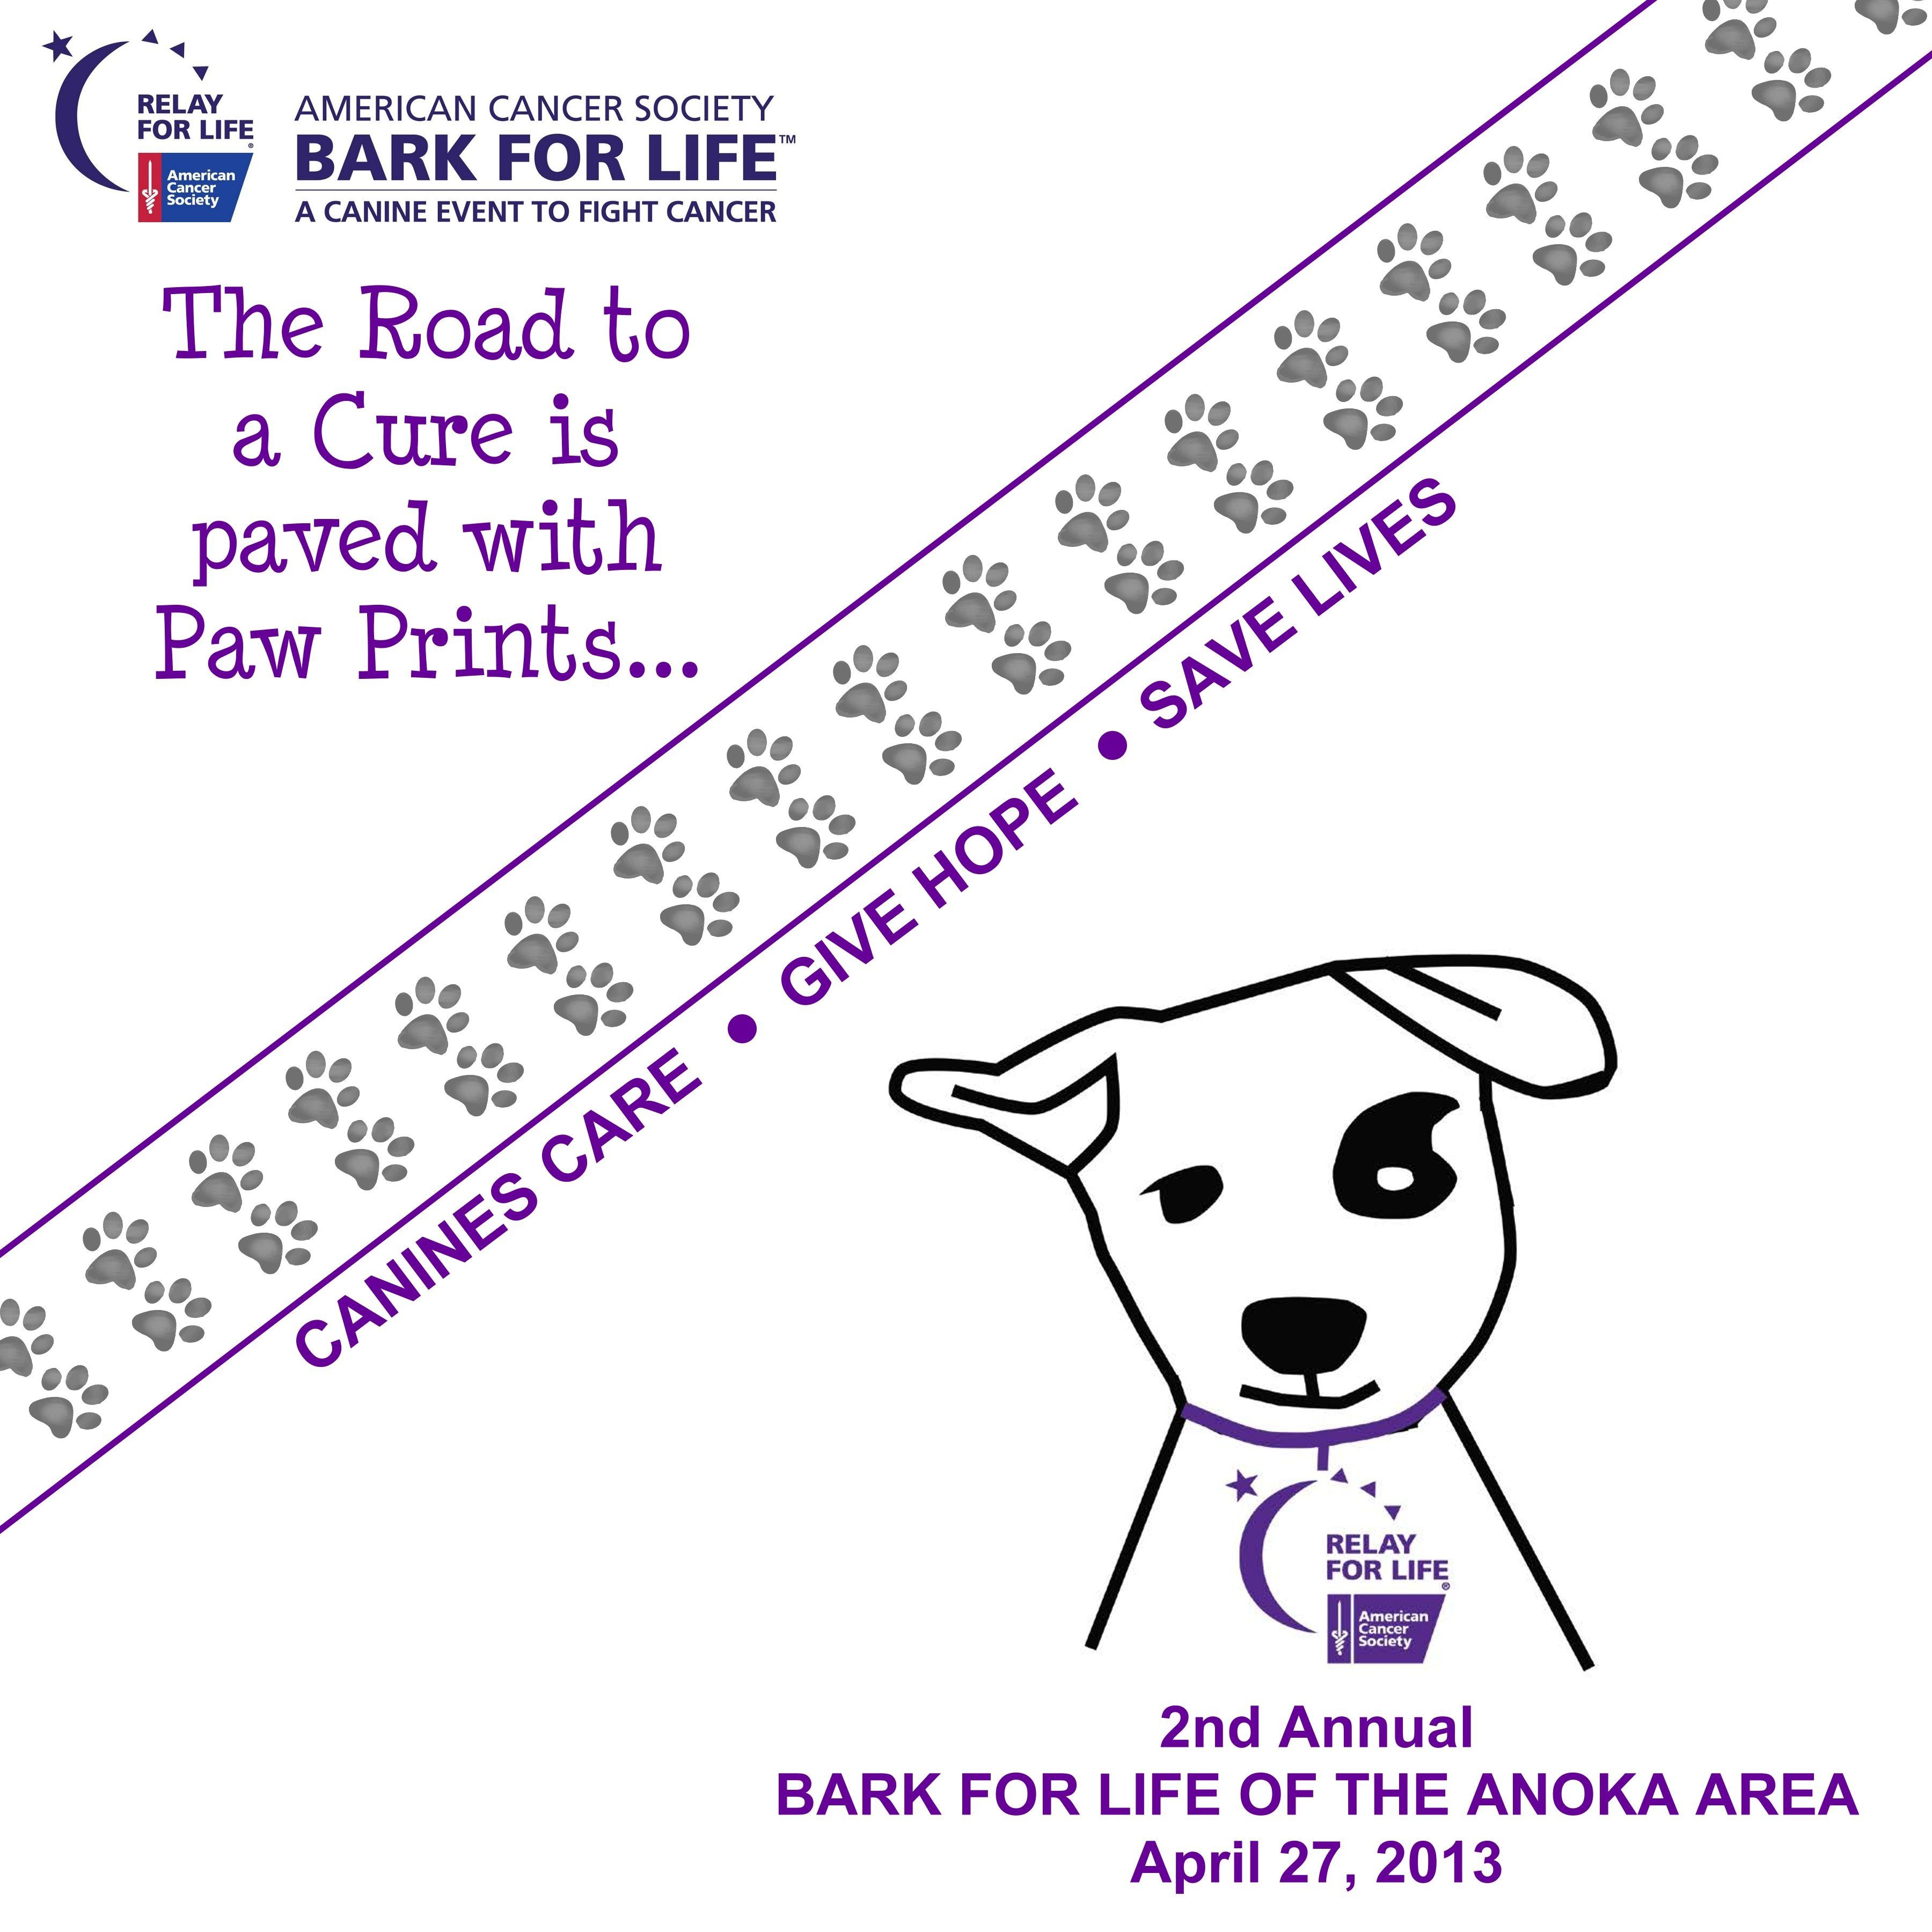 Bark For Life Of The Anoka Area On April 27 2013 At The Draw In